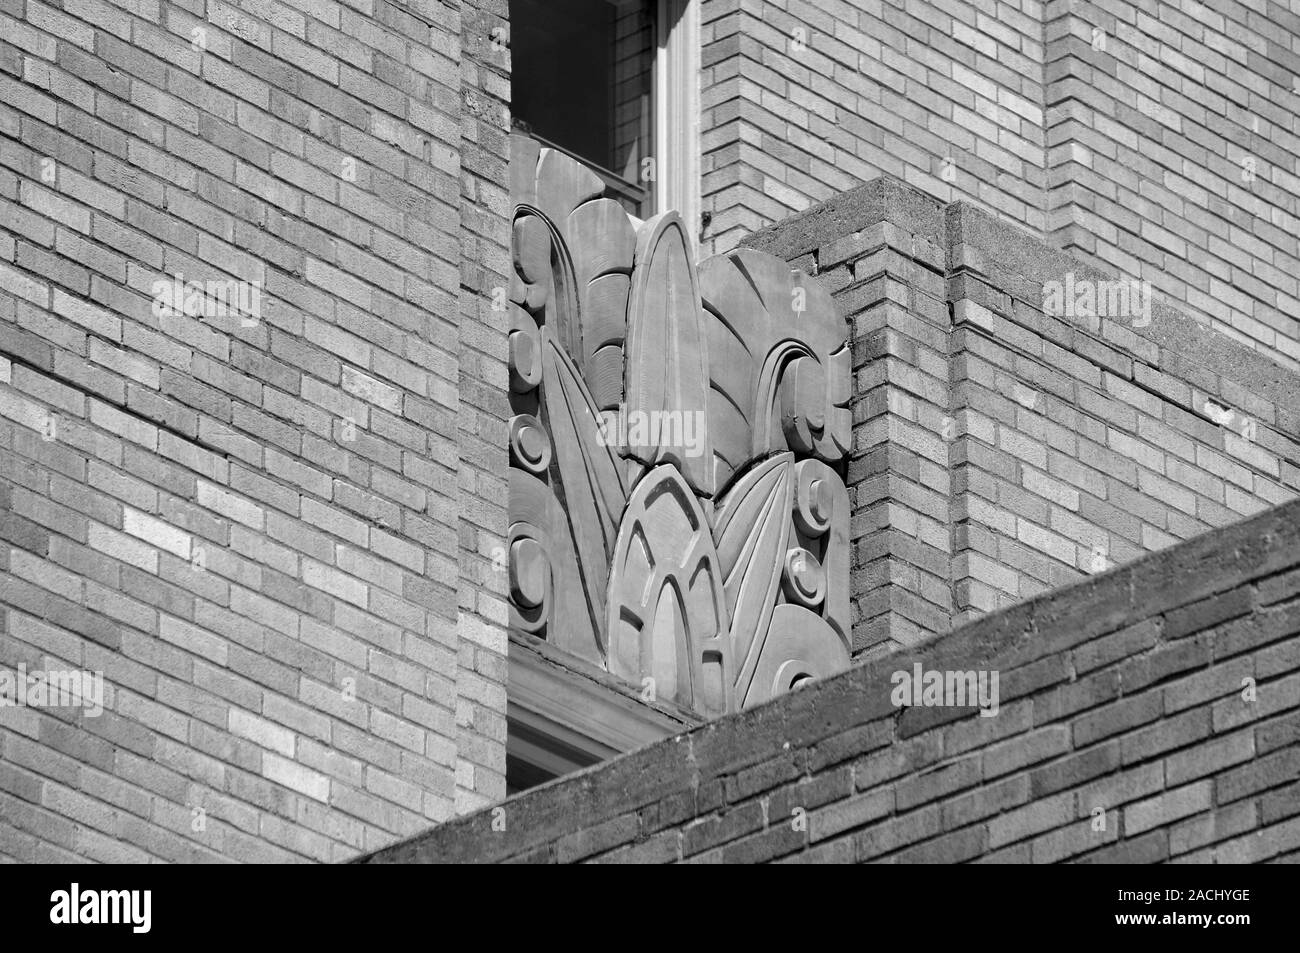 Art Deco design on the Bellingham Towers building, Bellingham, Washington state, USA Stock Photo